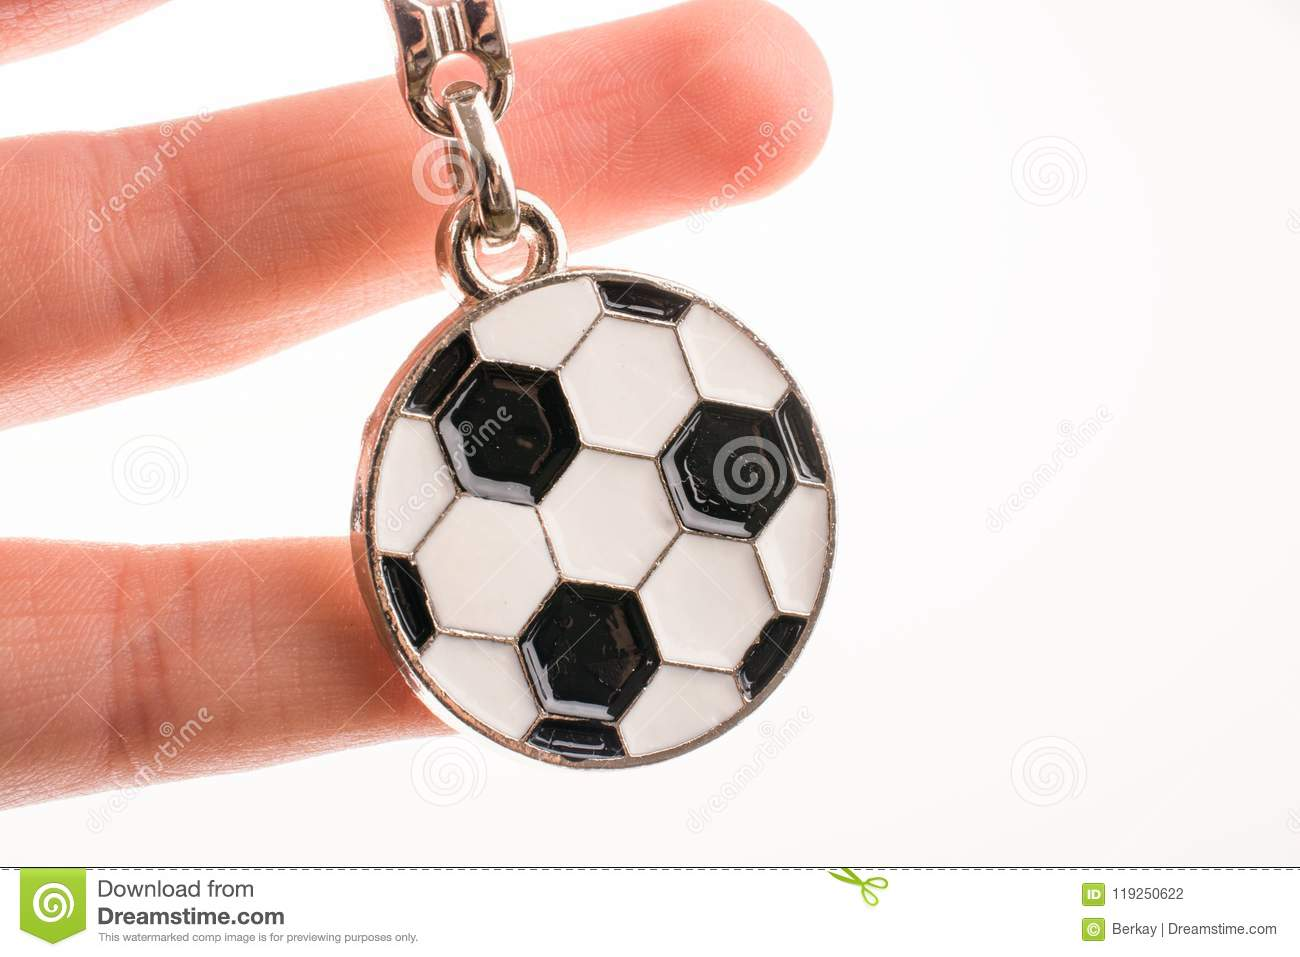 Key Holder With A Soccer Ball In Hand Stock Photo - Image of stadium ... 31c47b966